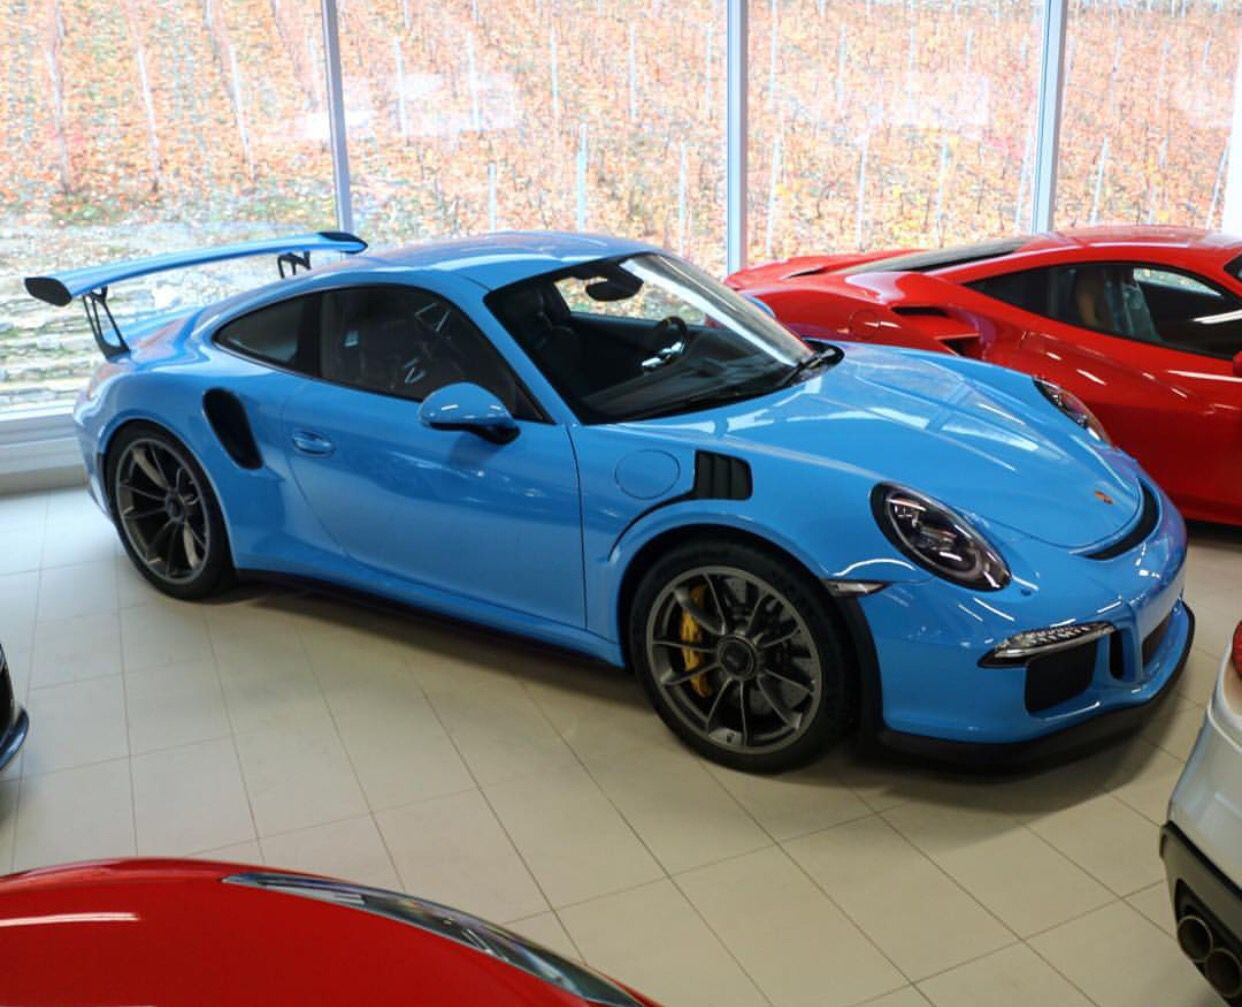 Merveilleux Porsche 991 GT3 RS Painted In Riviera Blue Photo Taken By: @romainantiochus  On Instagram